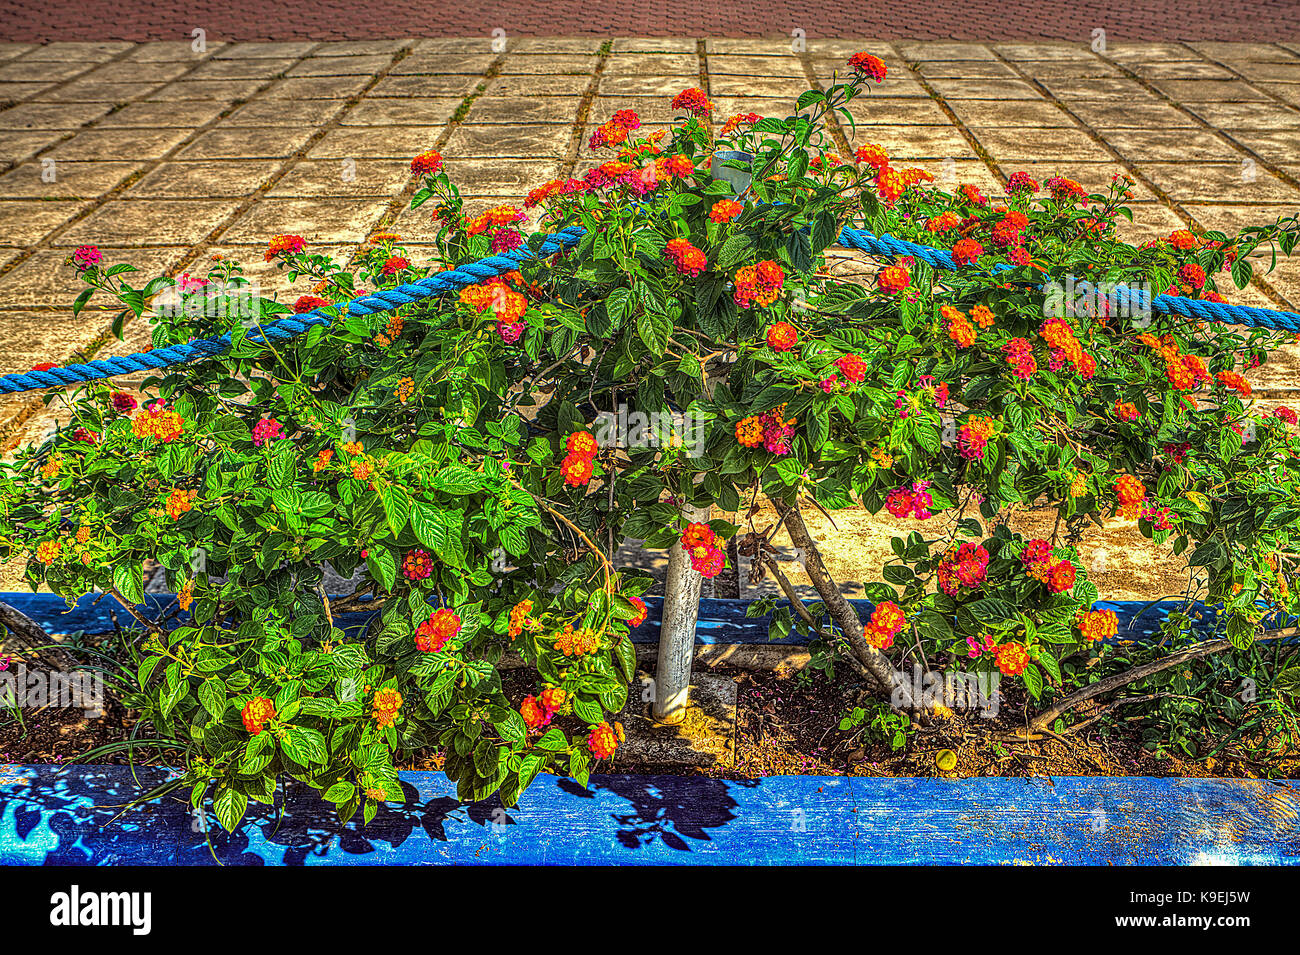 Lantana vines with colorful blossoms are a banned, noxious plant in many places. - Stock Image